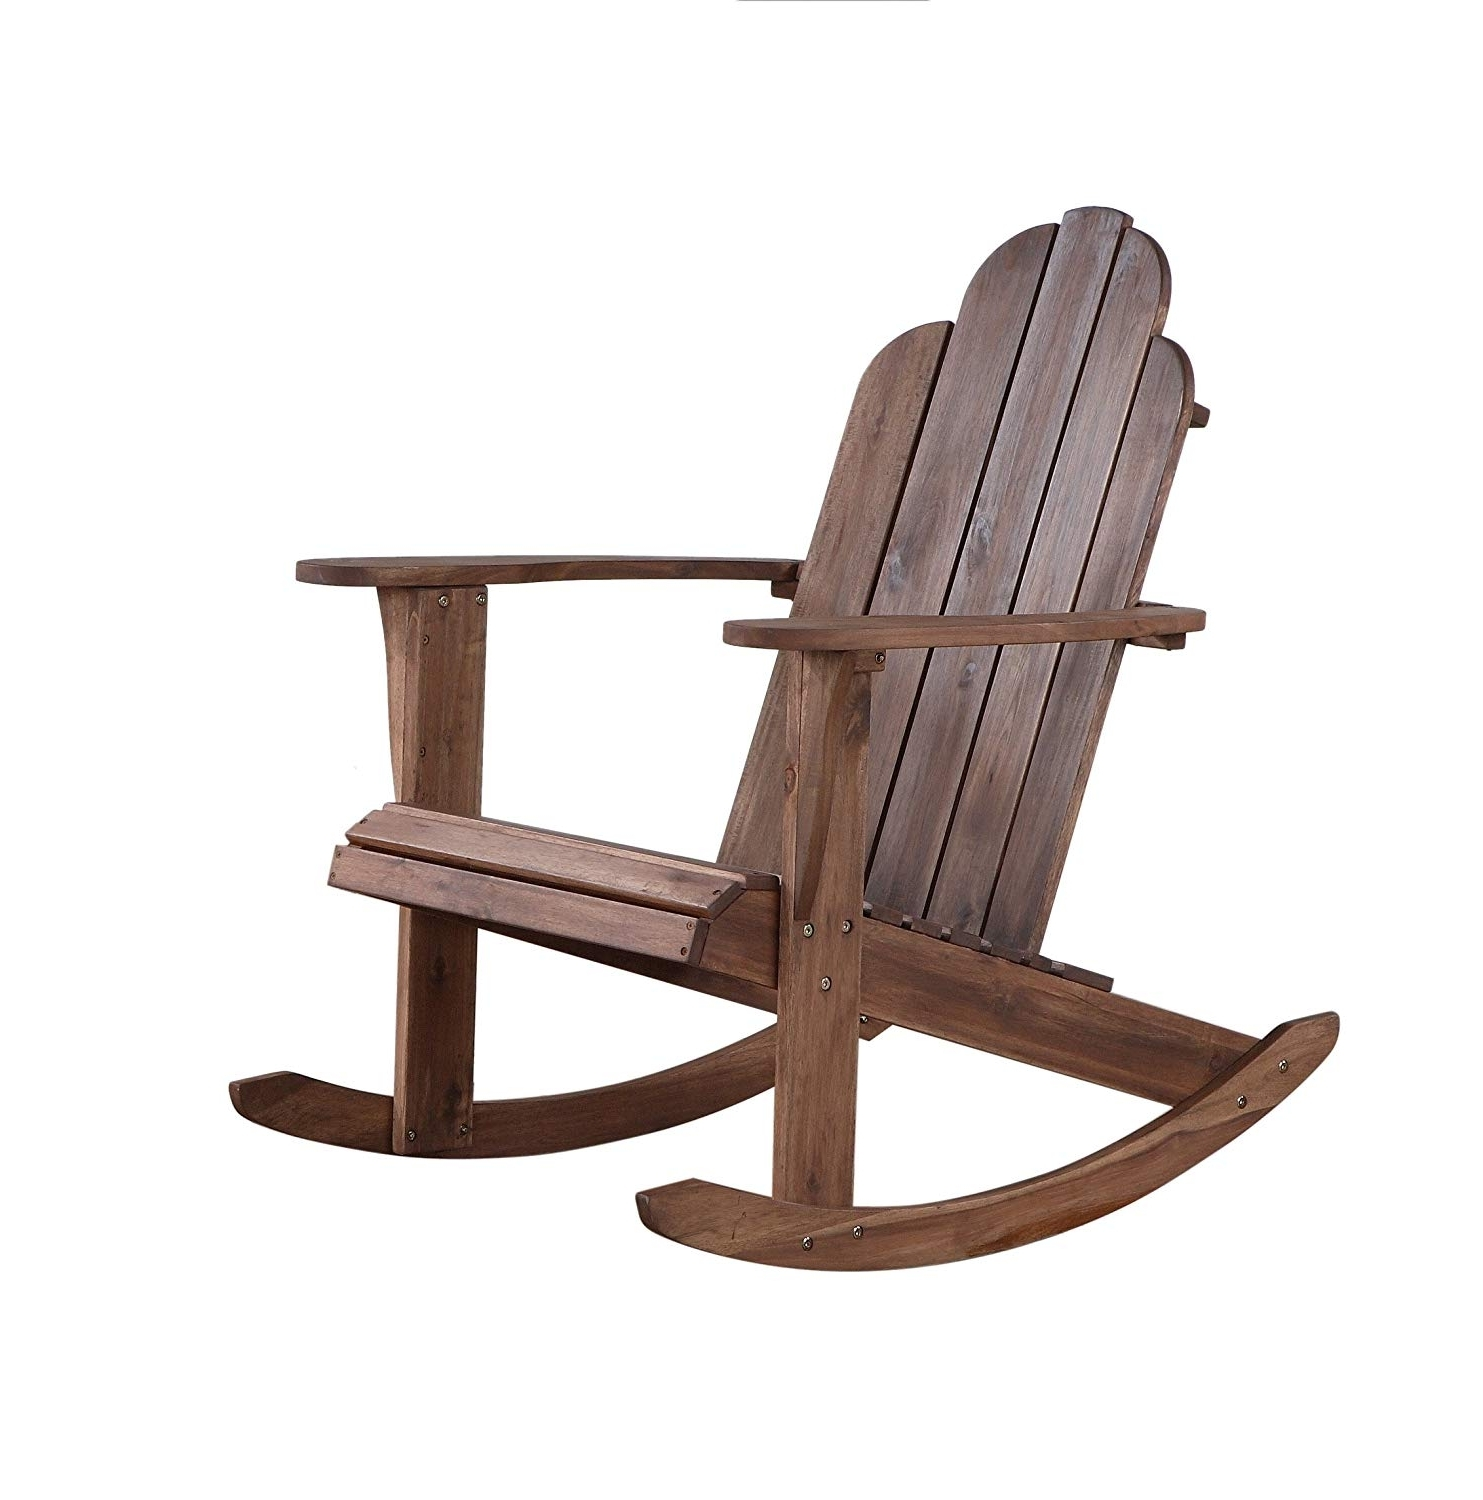 Well Liked Teak Patio Rocking Chairs Inside Amazon: Linon Woodstock Rocking Chair, Teak: Kitchen & Dining (View 13 of 15)